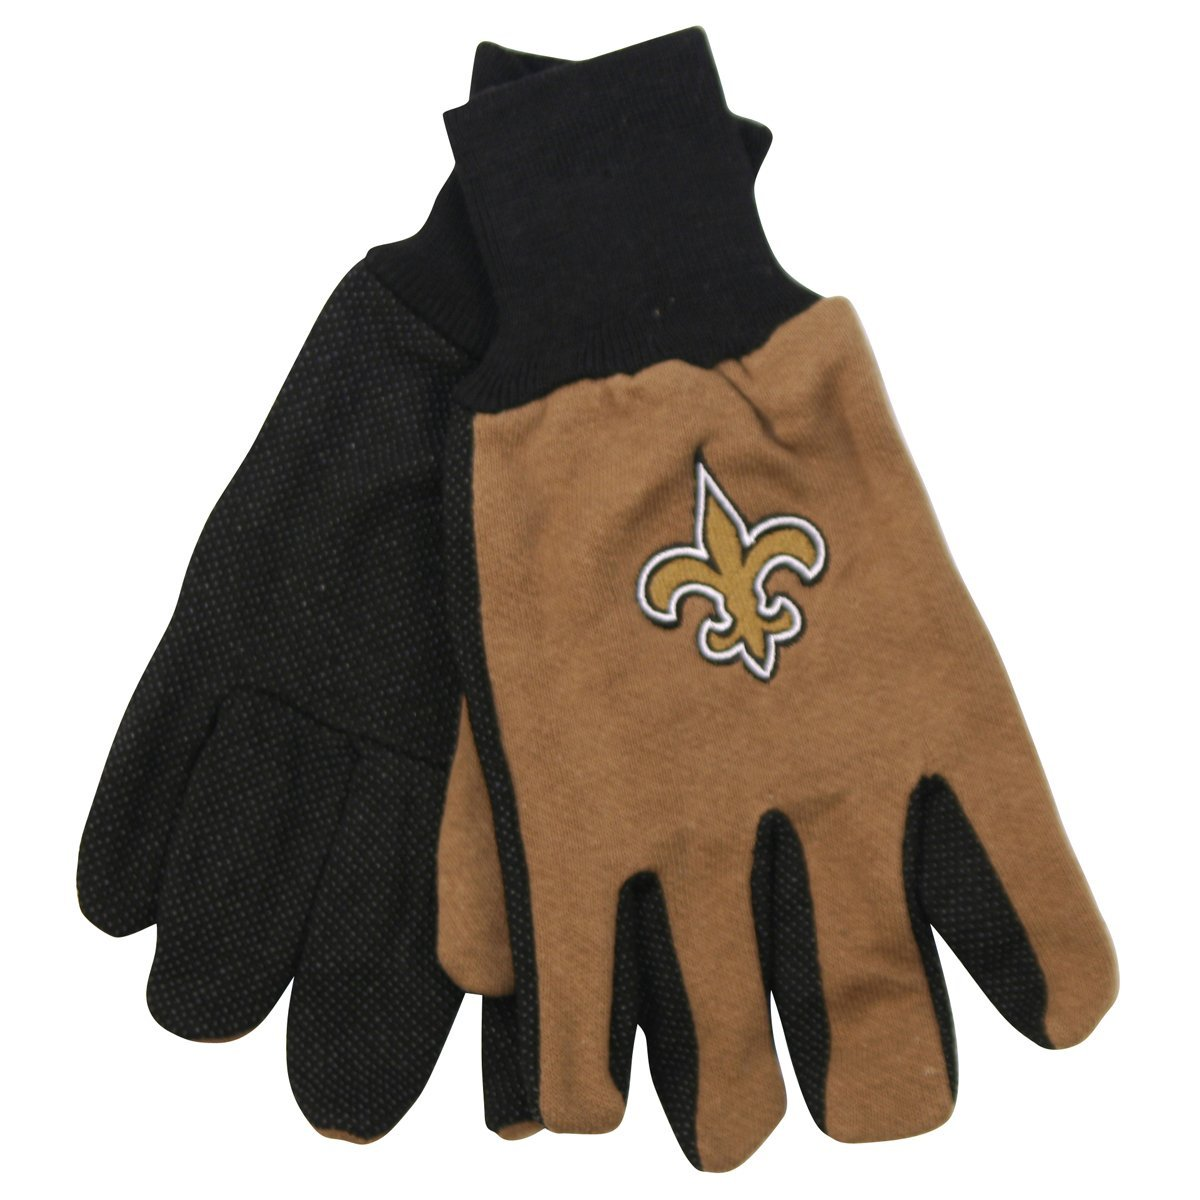 New Orleans Saints Two-Tone Gloves by McArthur